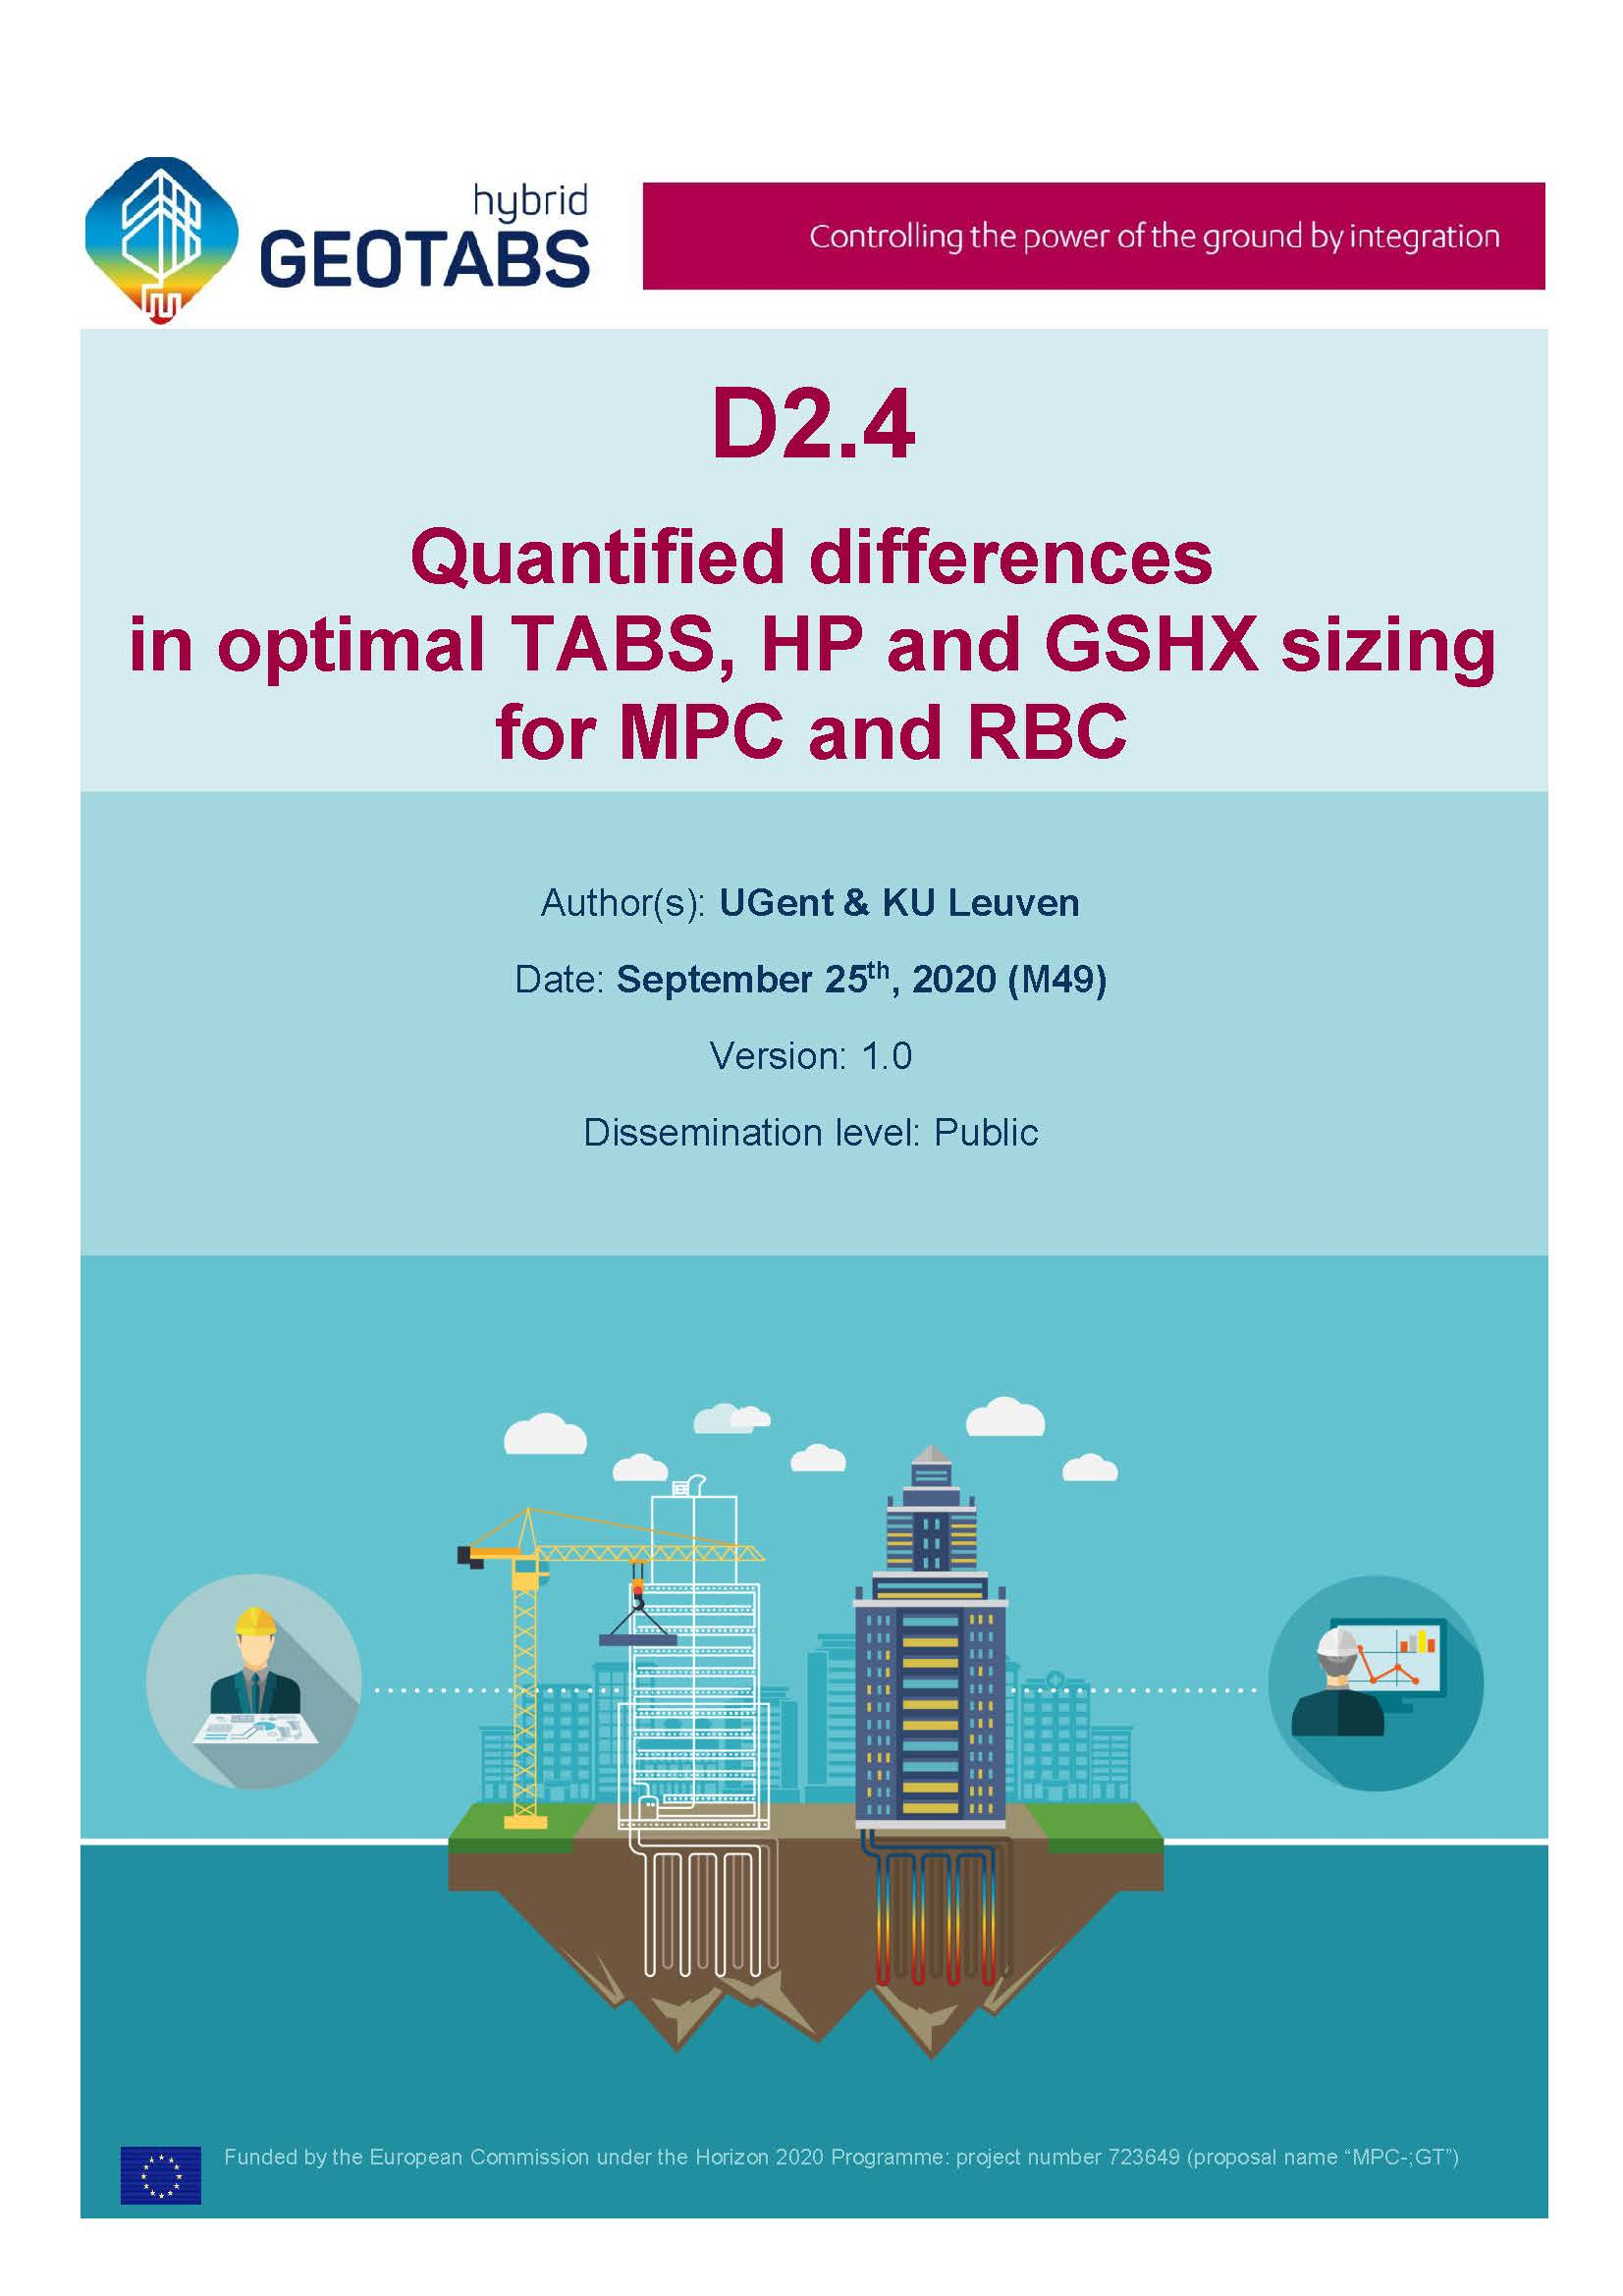 D2.4 front cover